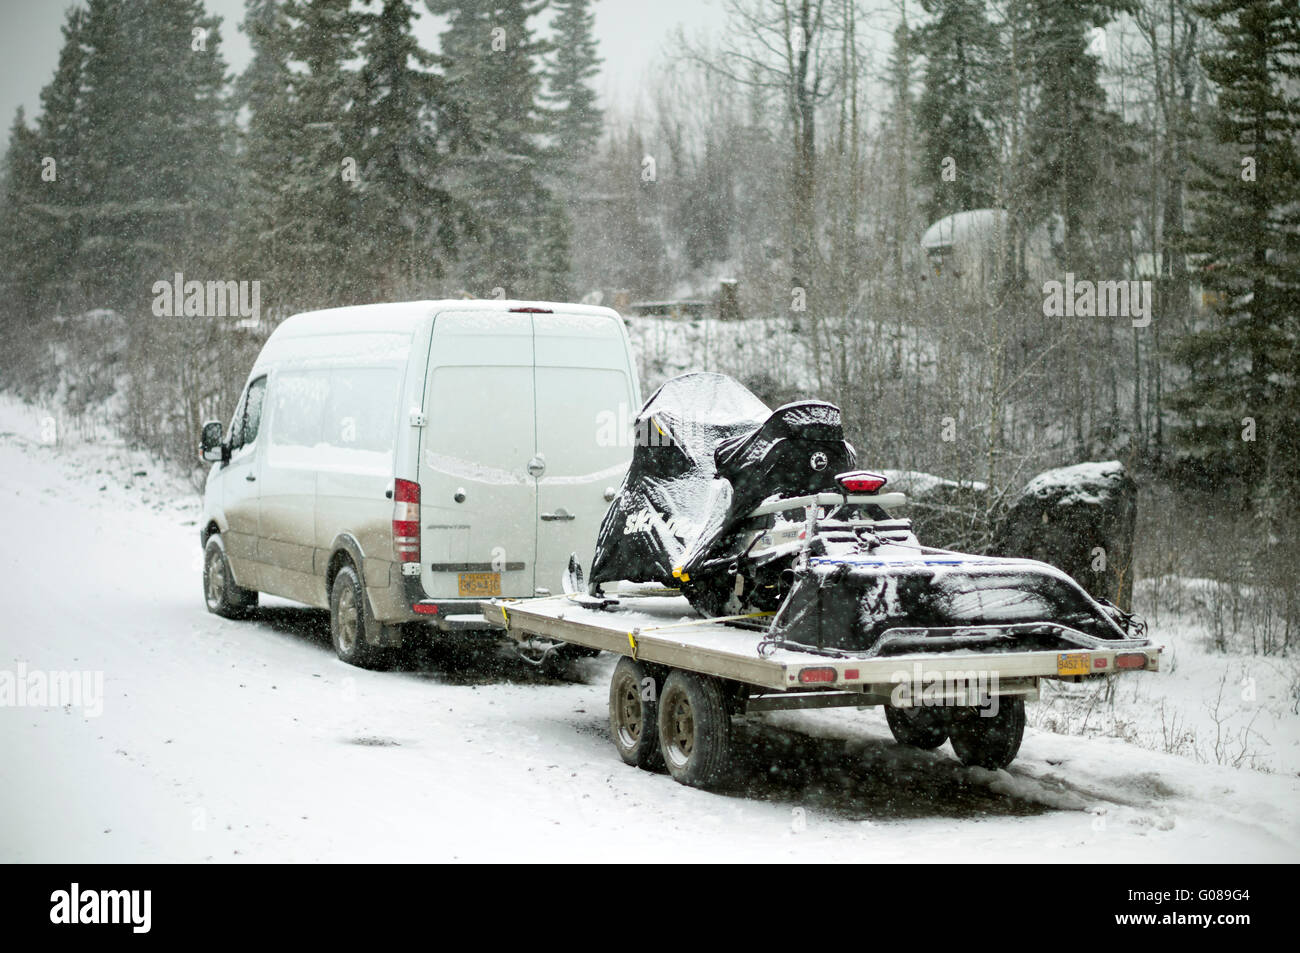 Winter driving in Alaska. Freightliner Sprinter Cargo Van pulling the Ski Doo Expedition snow machine on the trailer - Stock Image